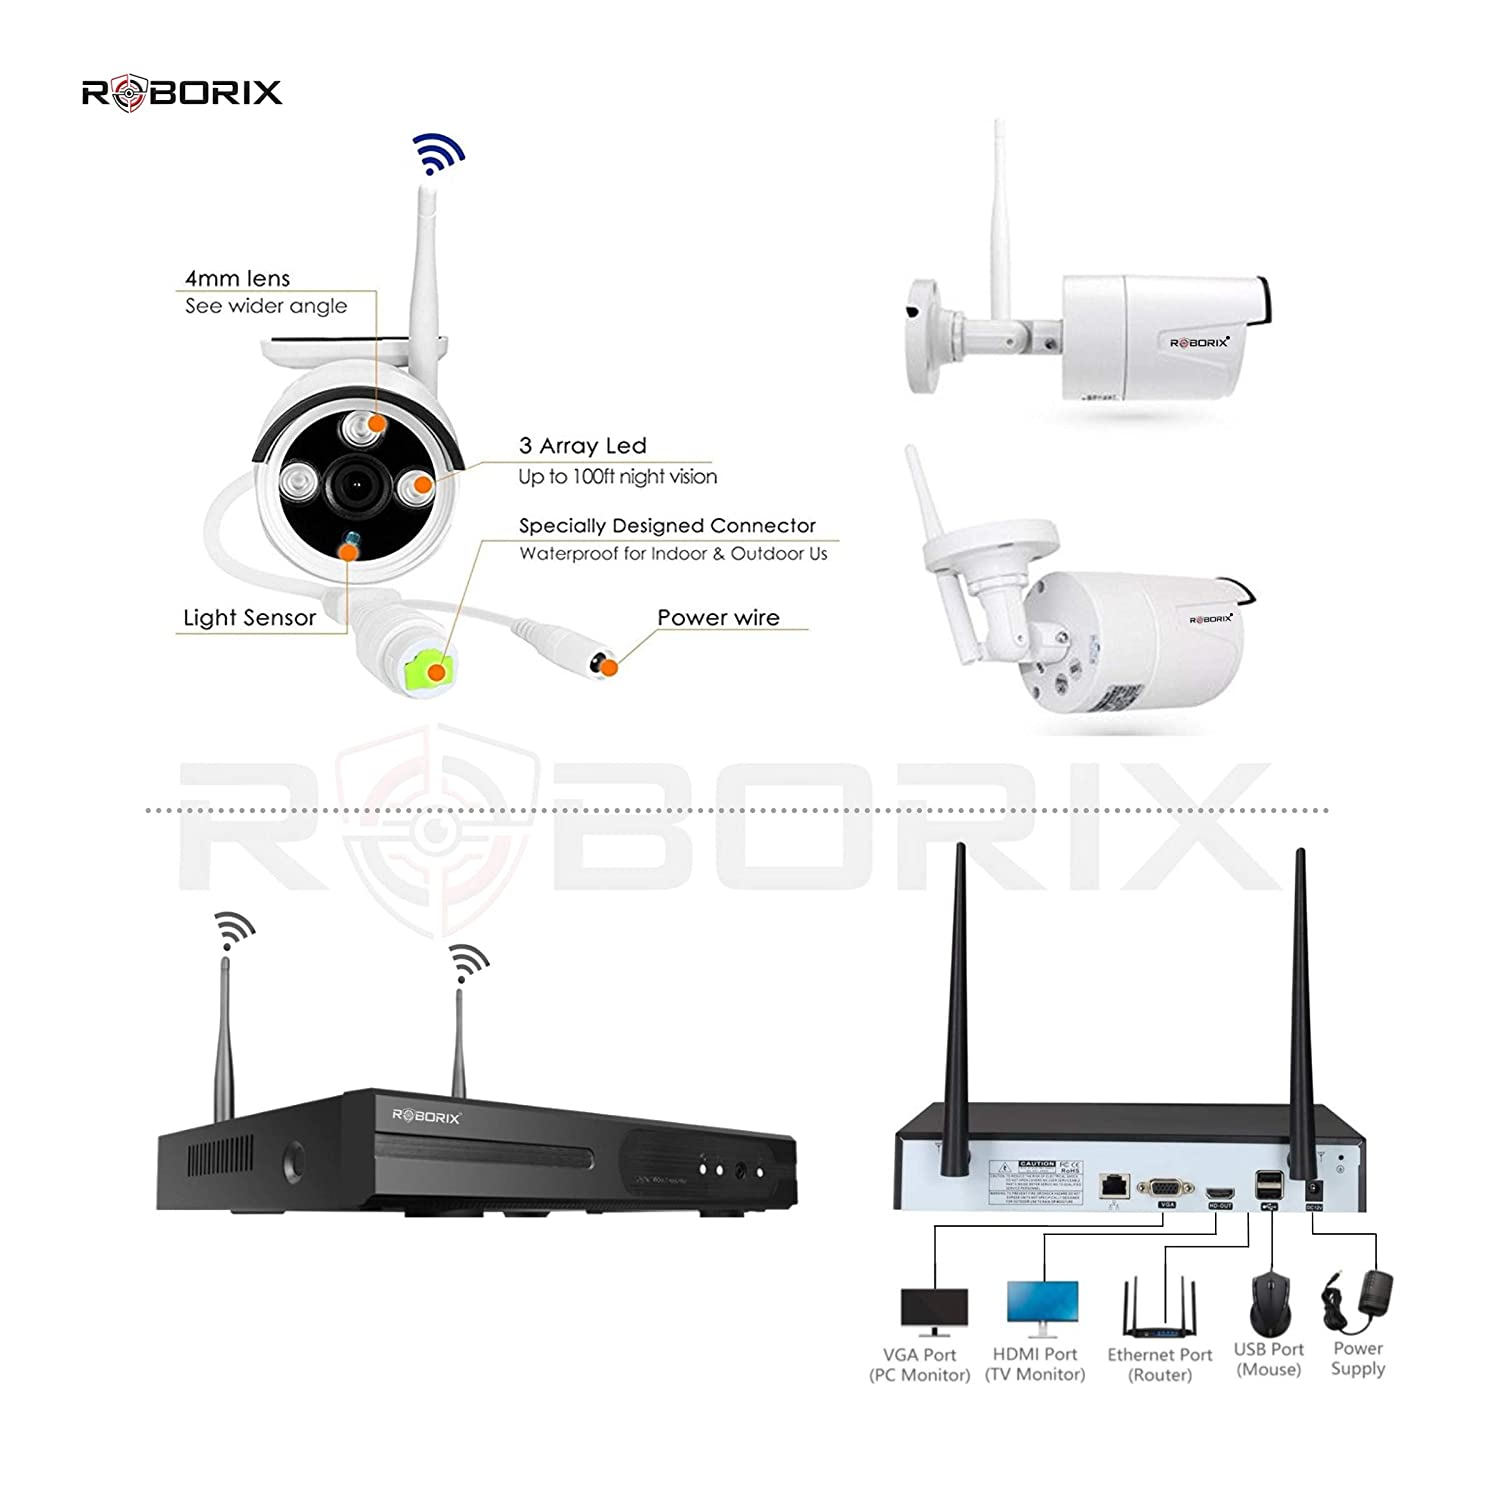 Buy Roborix Wireless Ip Nvr Cctv Security Camera Kit 4 Channel Mouse Cable Wire Diagram 720p Hd Infrared Bullet Cameras Day Night Vision Weather Proof Indoor Outdoor Online At